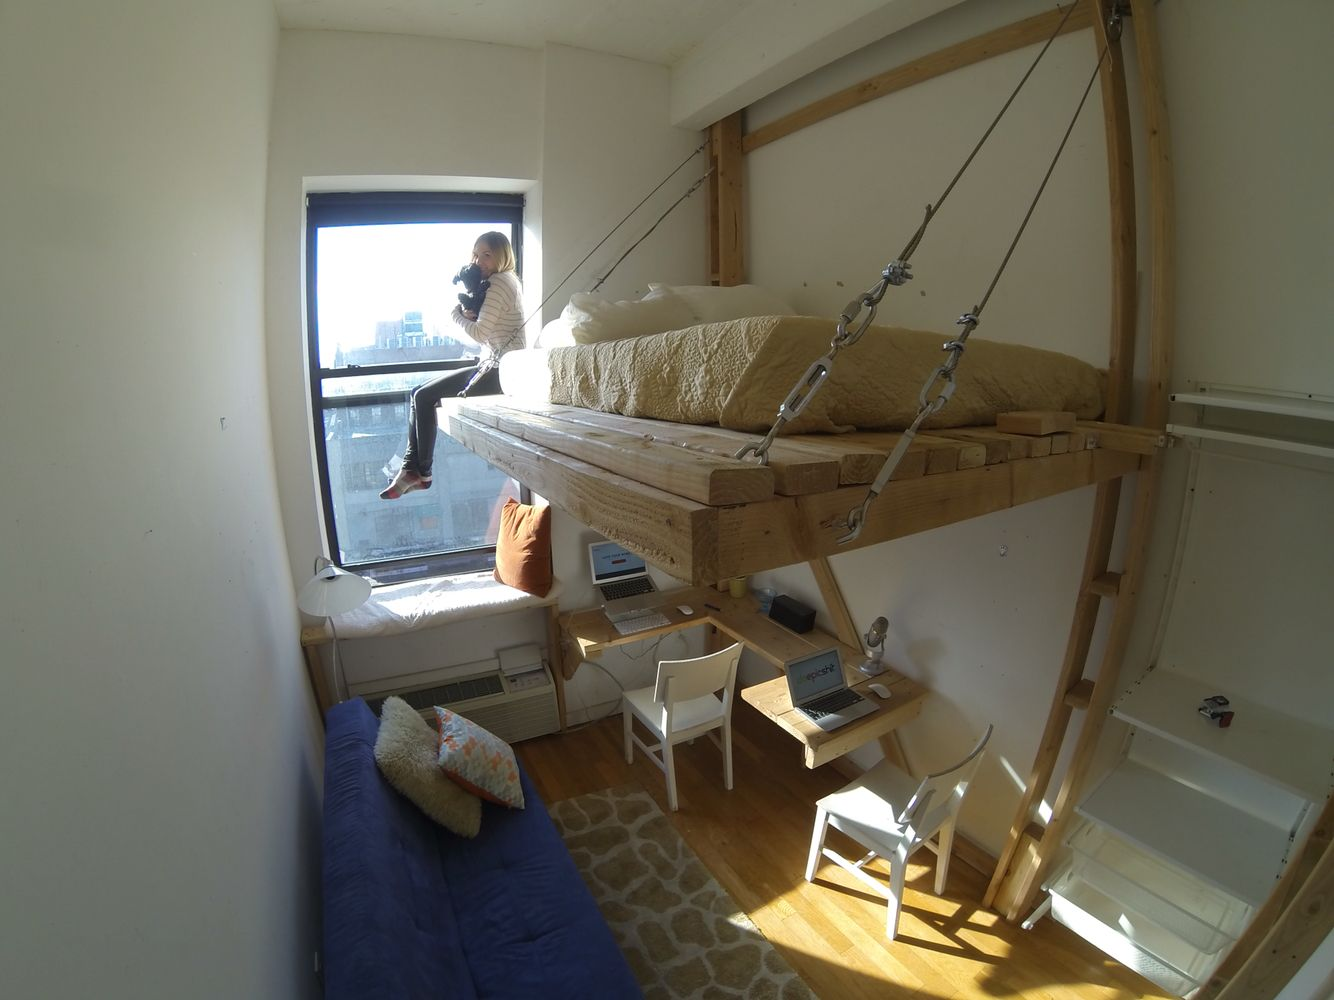 Diy Loft Bed Floating Bed Suspension Bed Brooklyn Loftice 1 0 Floating Bed Edition The Giant Concrete Beam Diy Loft Bed Queen Loft Beds Loft Bed